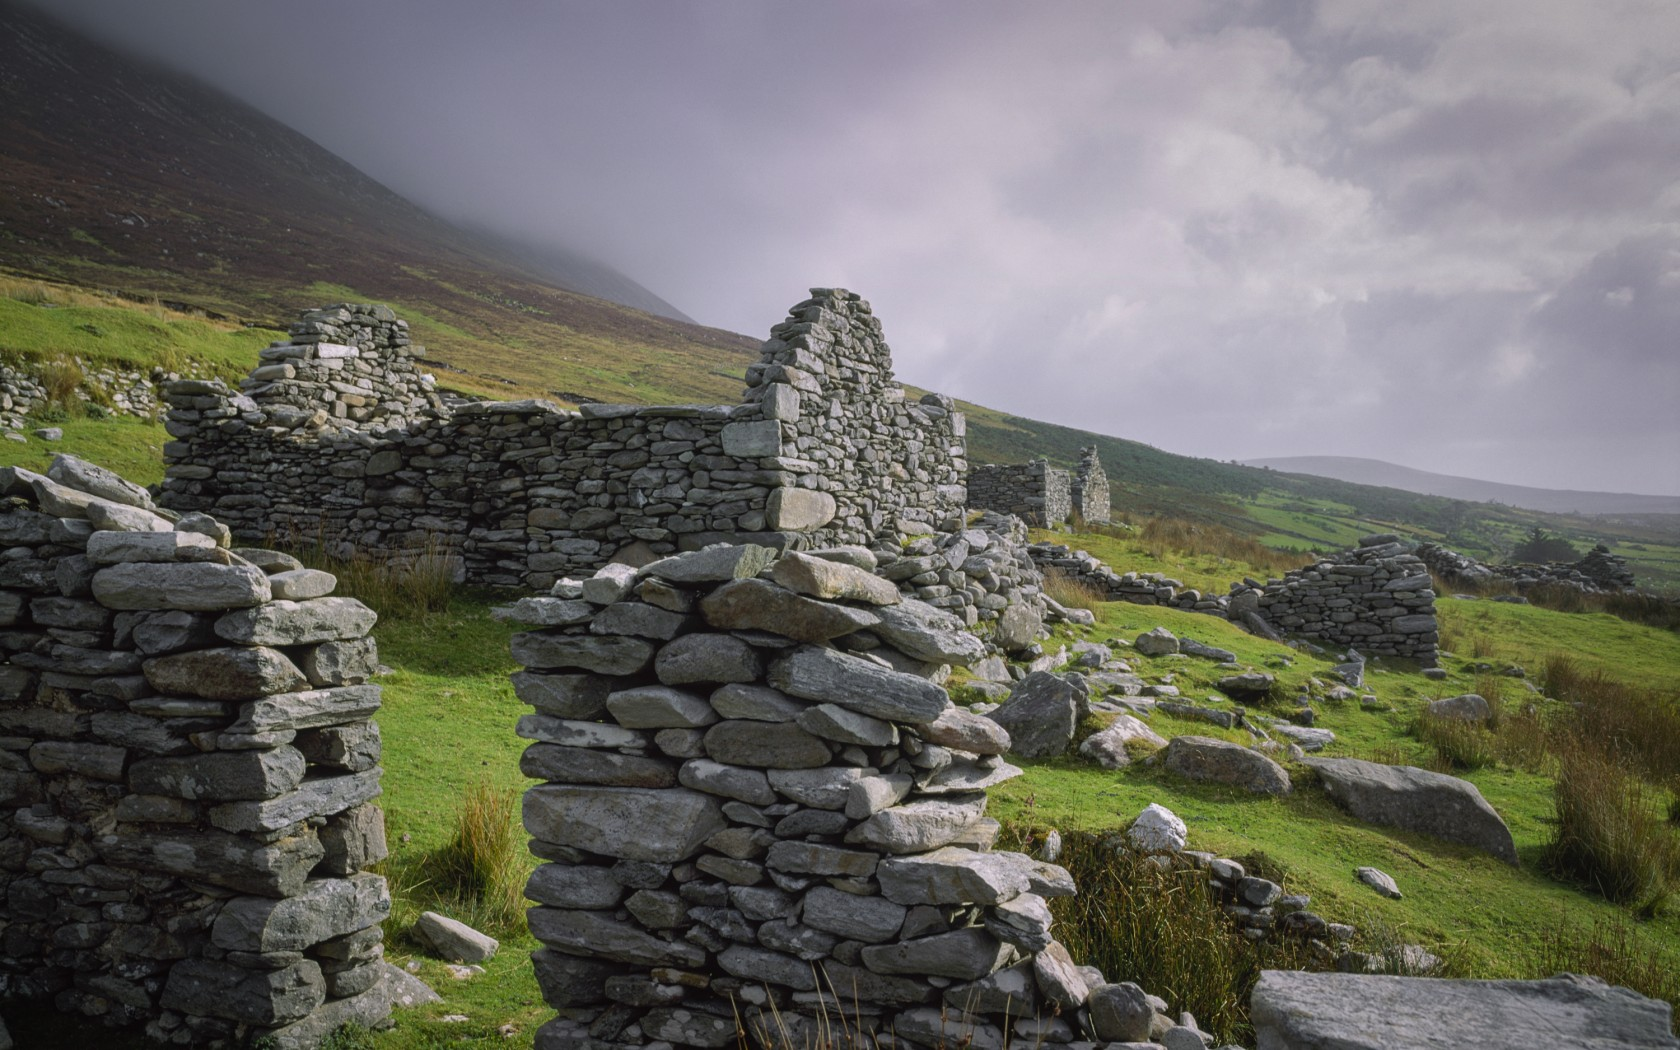 http://www.roughguides.com/gallery/worlds-most-haunted-places/